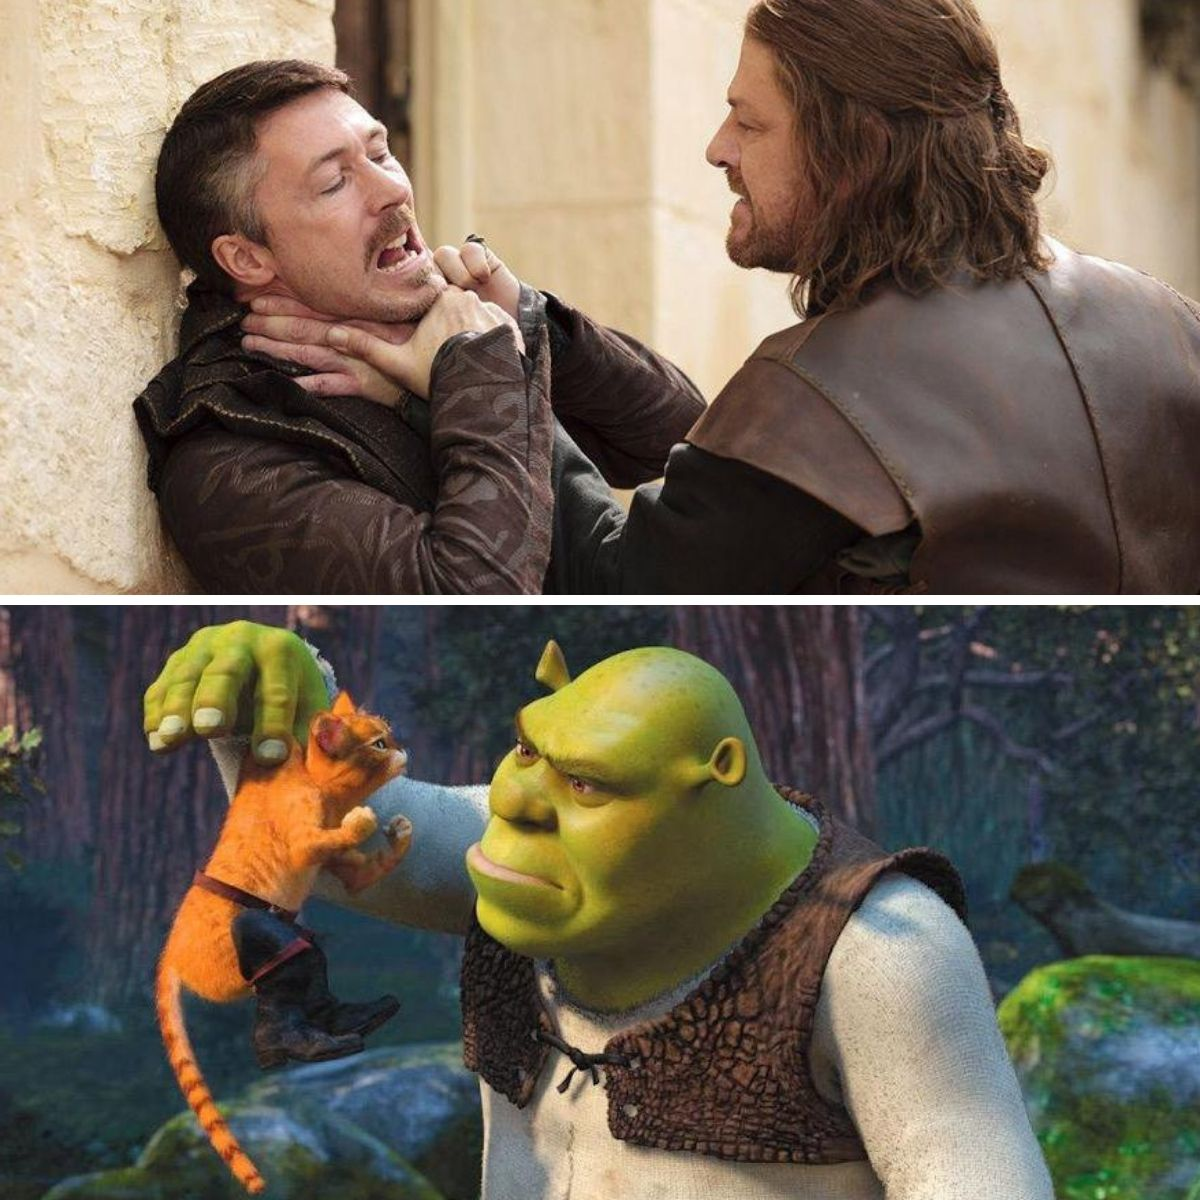 ned and shrek against littlefinger and puss in boots